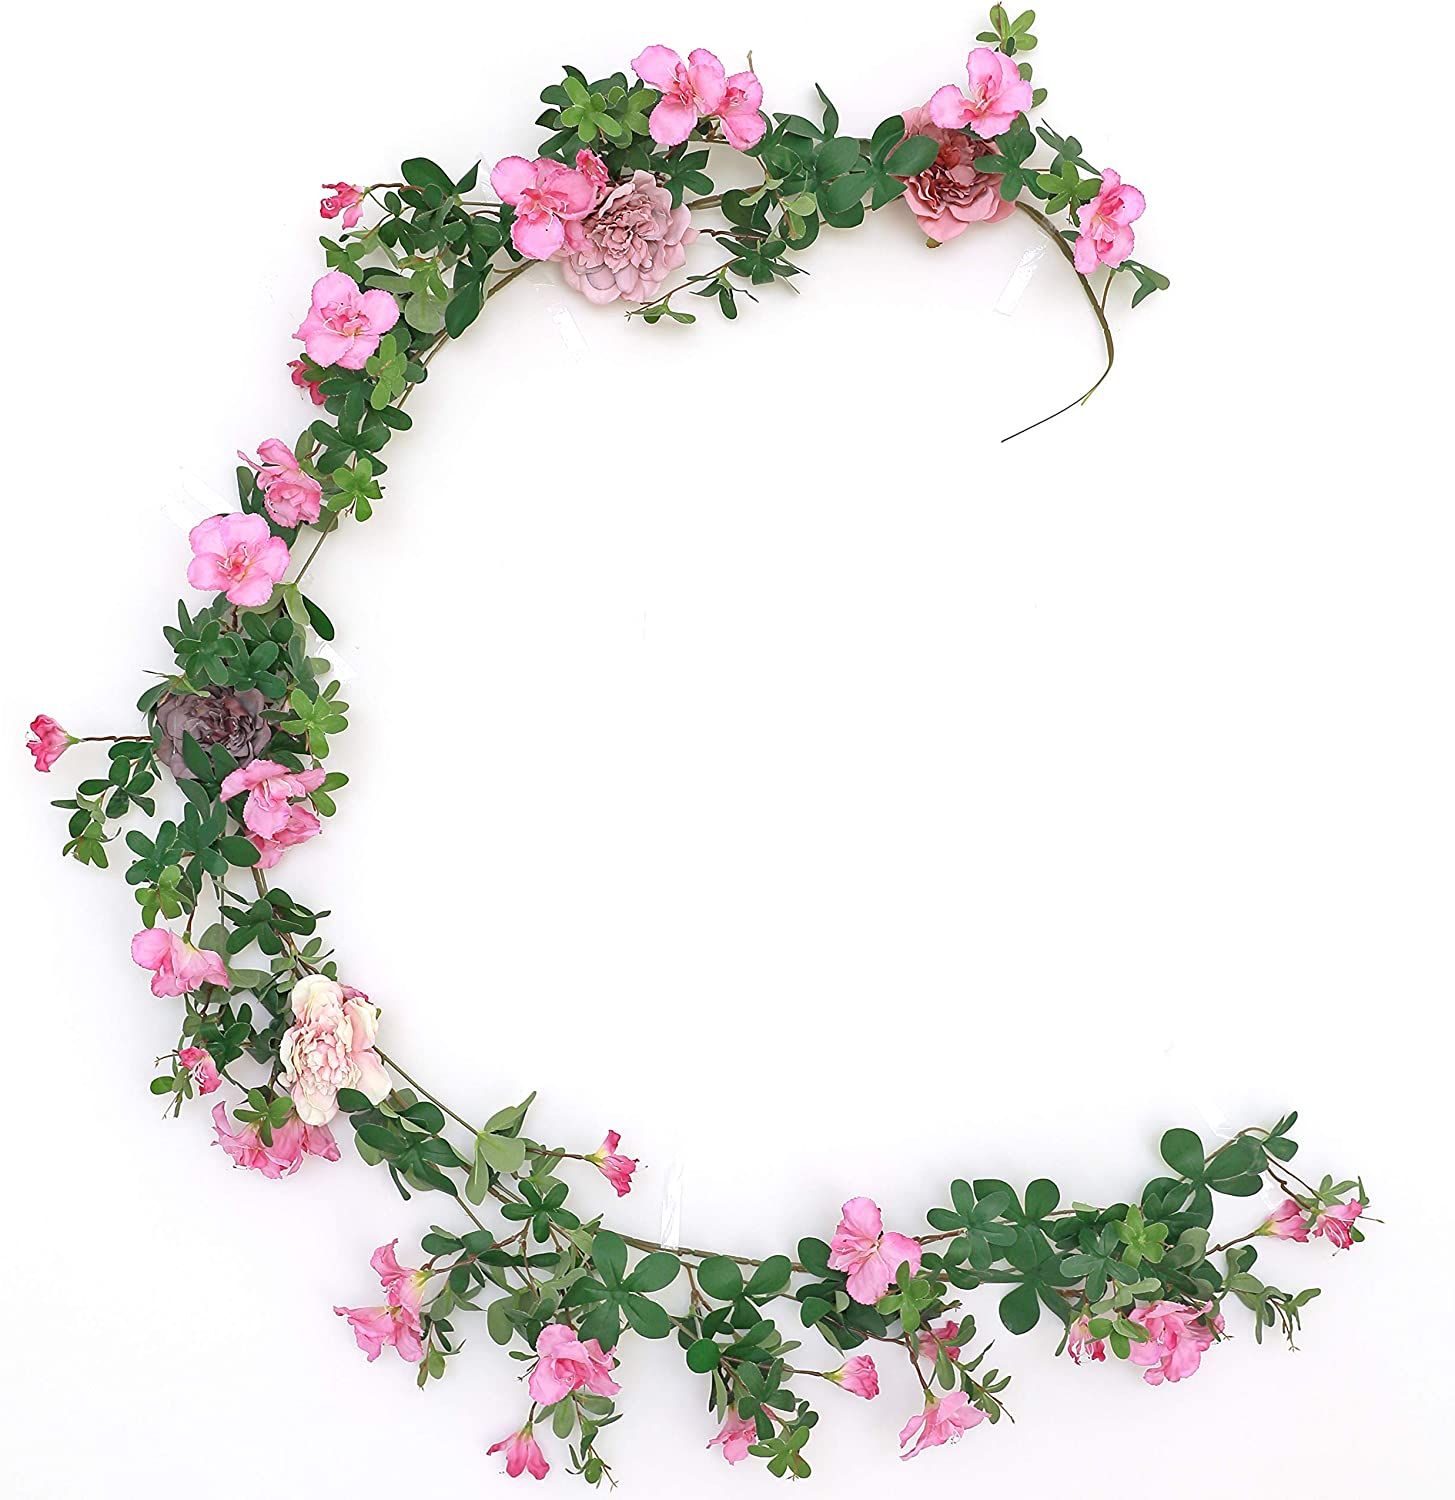 WAKISAKI Fake Vines Artificial Flowers Cherry Blossom & Ivy Hanging Plants Greenery Garland, for Cute Kawaii Room Decor Japanese Flower Wall, Wedding Decorations Ceremony Arch (Noble Lilac)